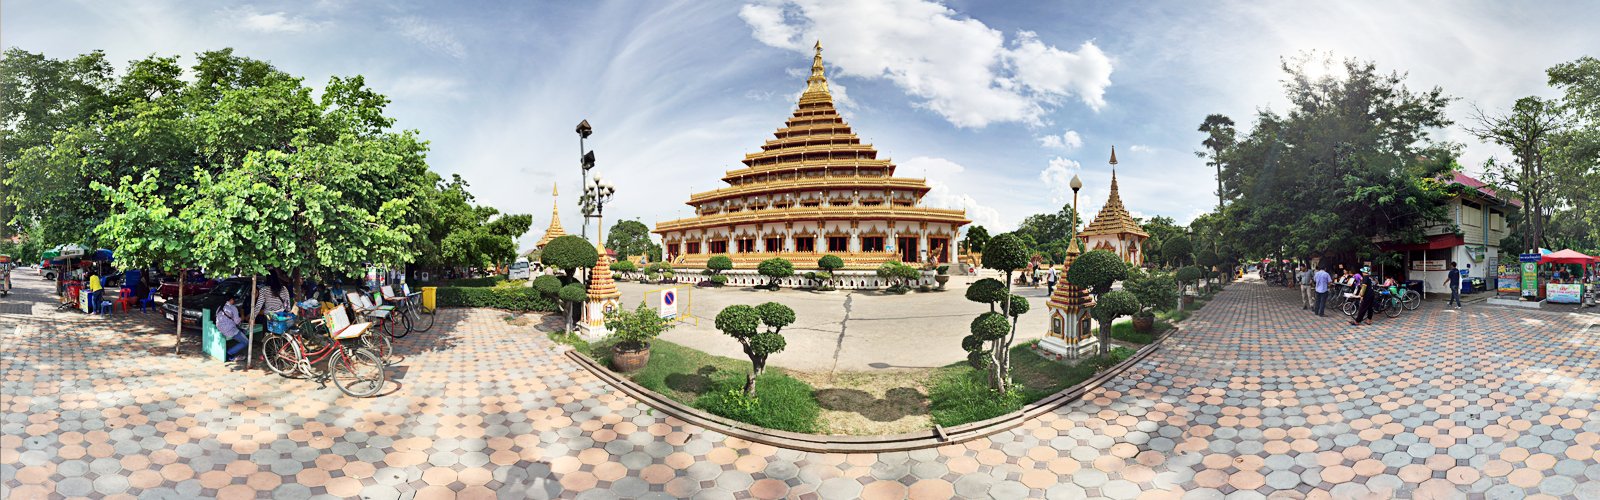 Nong Waeng Temple in Khon Kaen